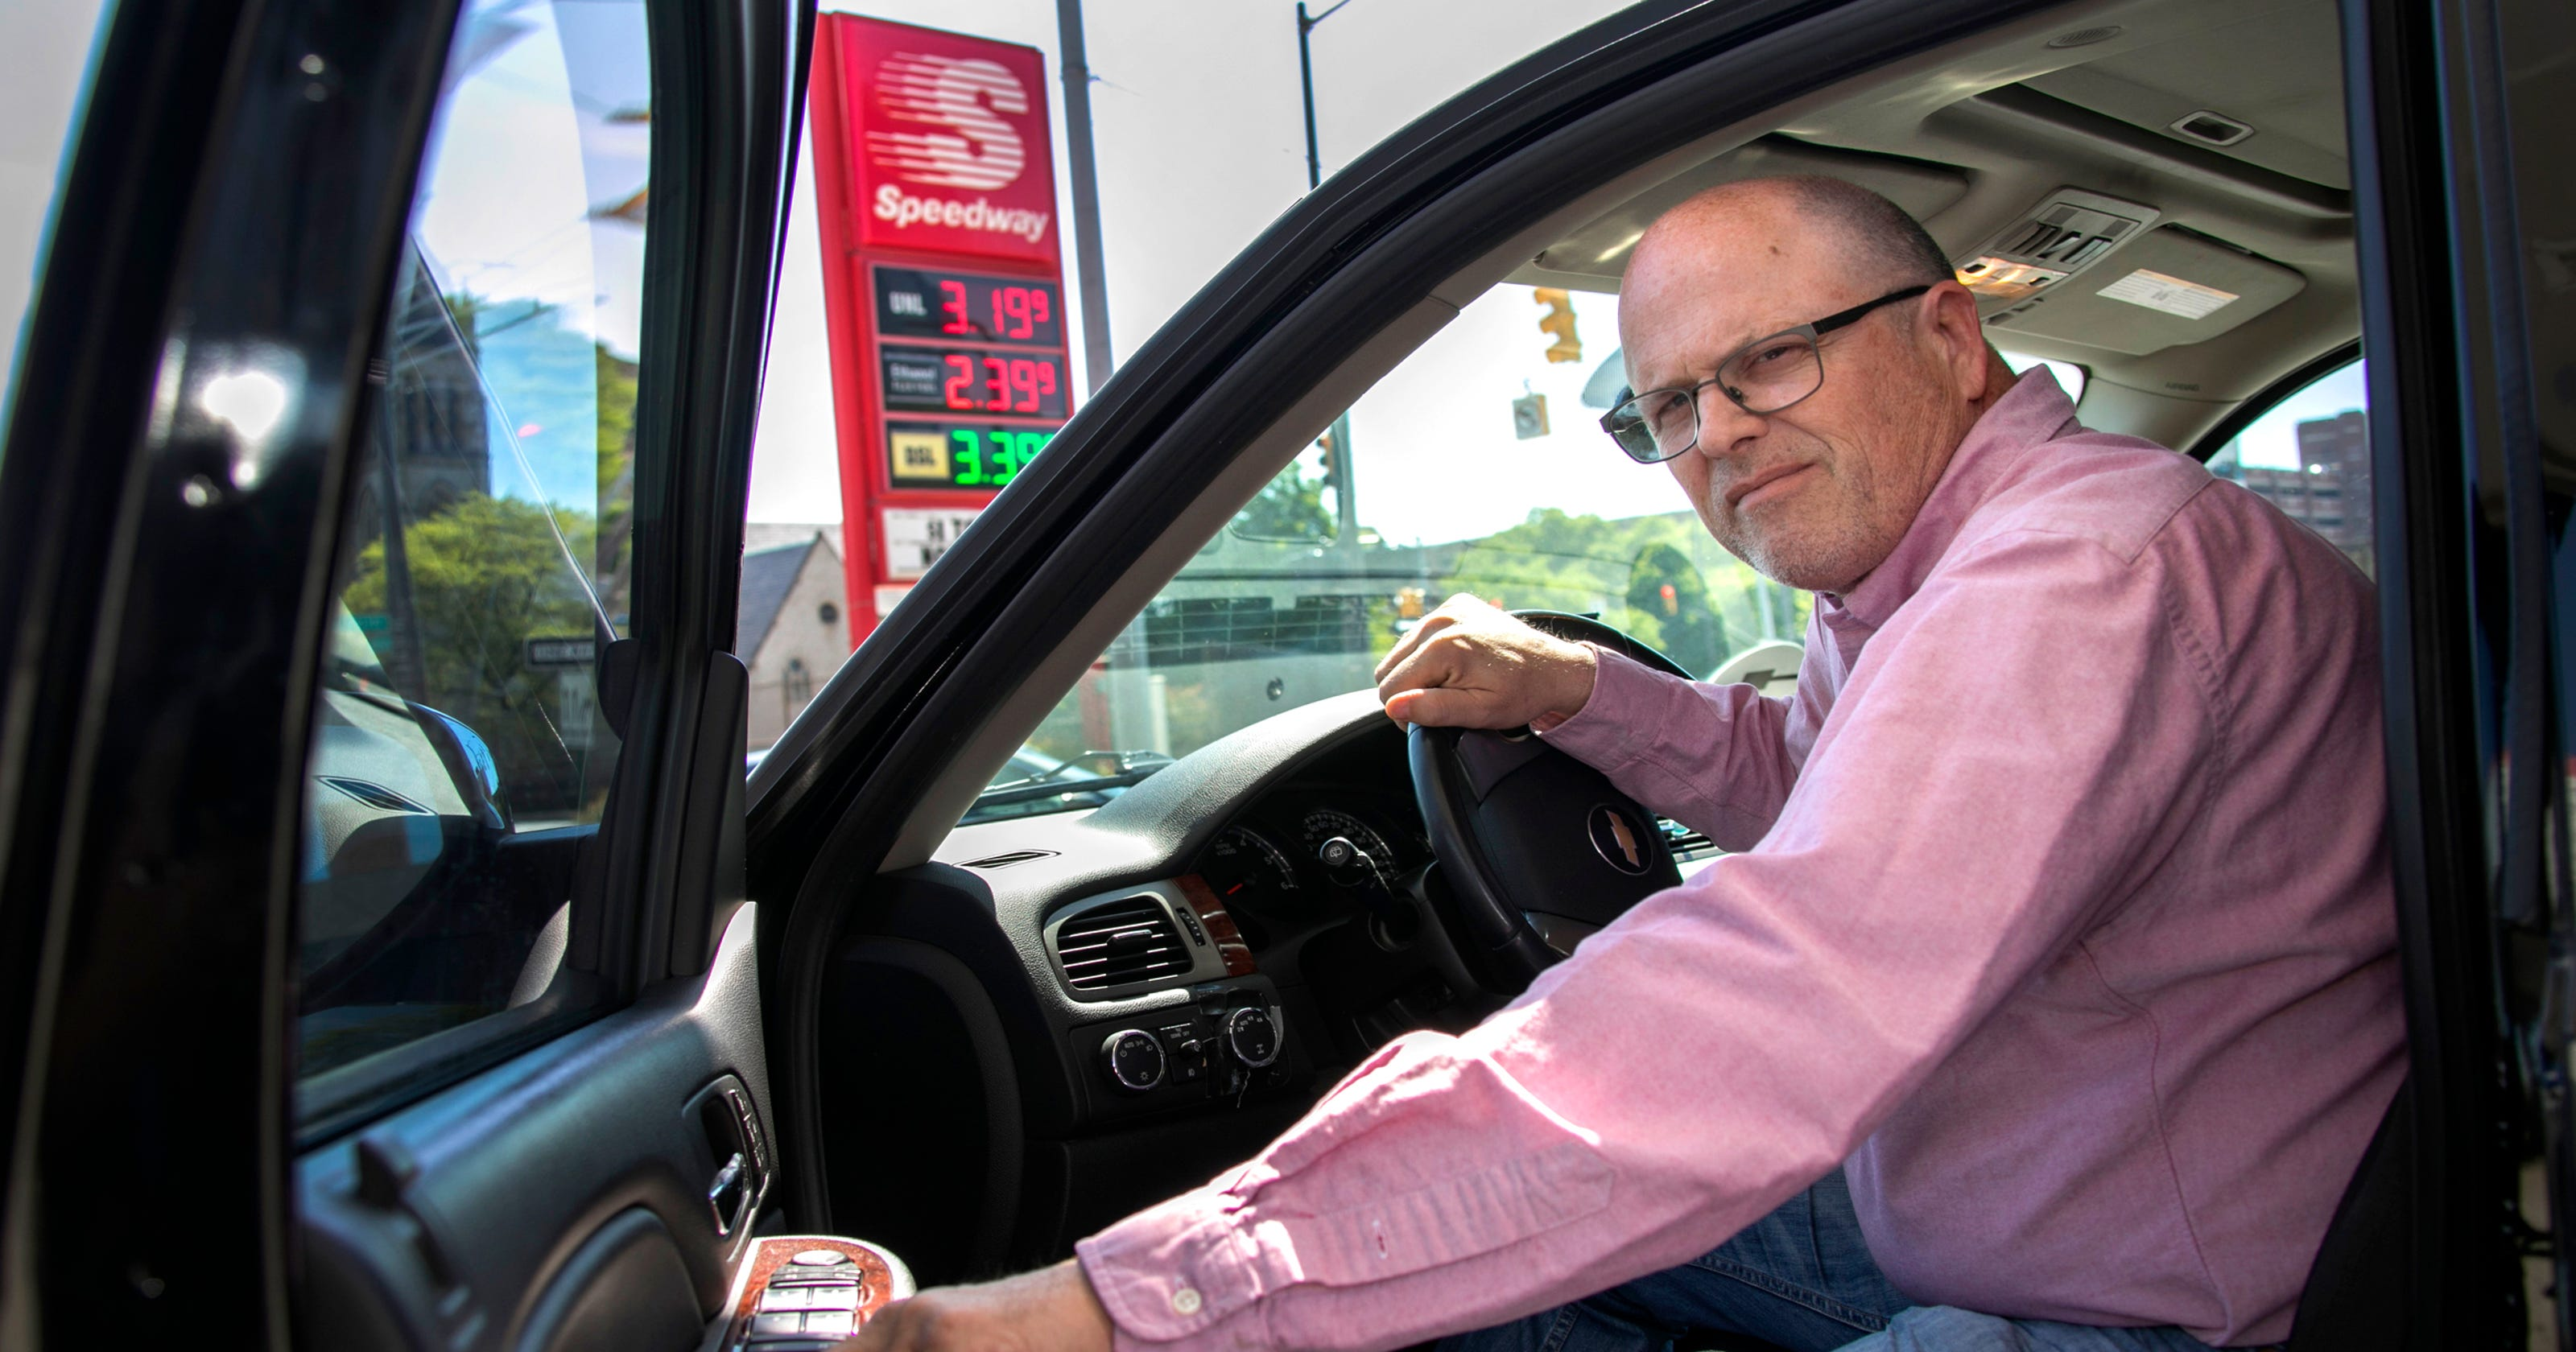 michigan gas prices how theyre hurting uber lyft drivers - Uber Fuel Rewards Card Activation